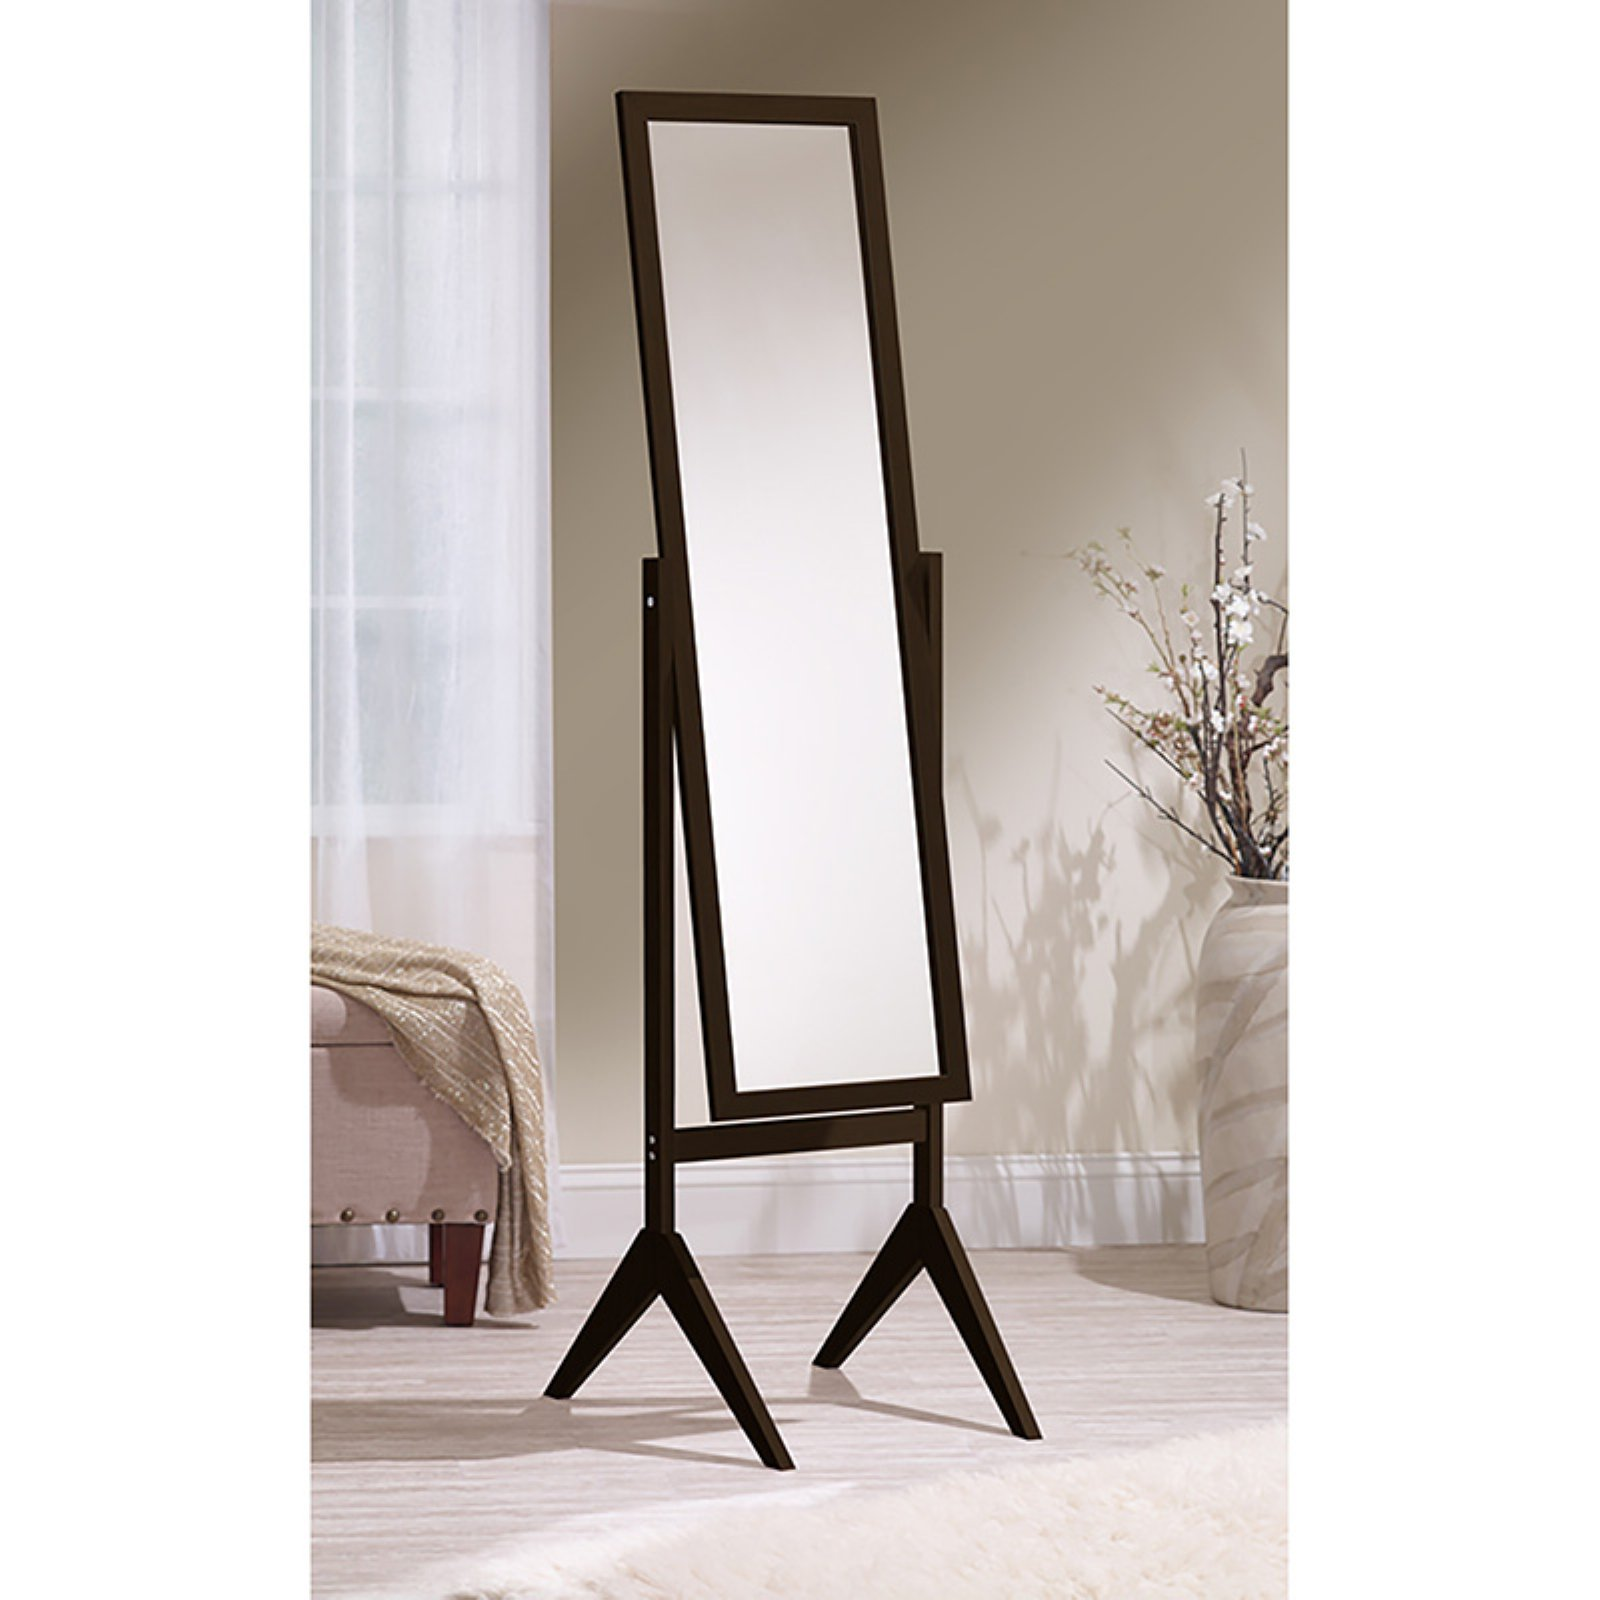 Mirrotek Freestanding Full Length Cheval Mirror by